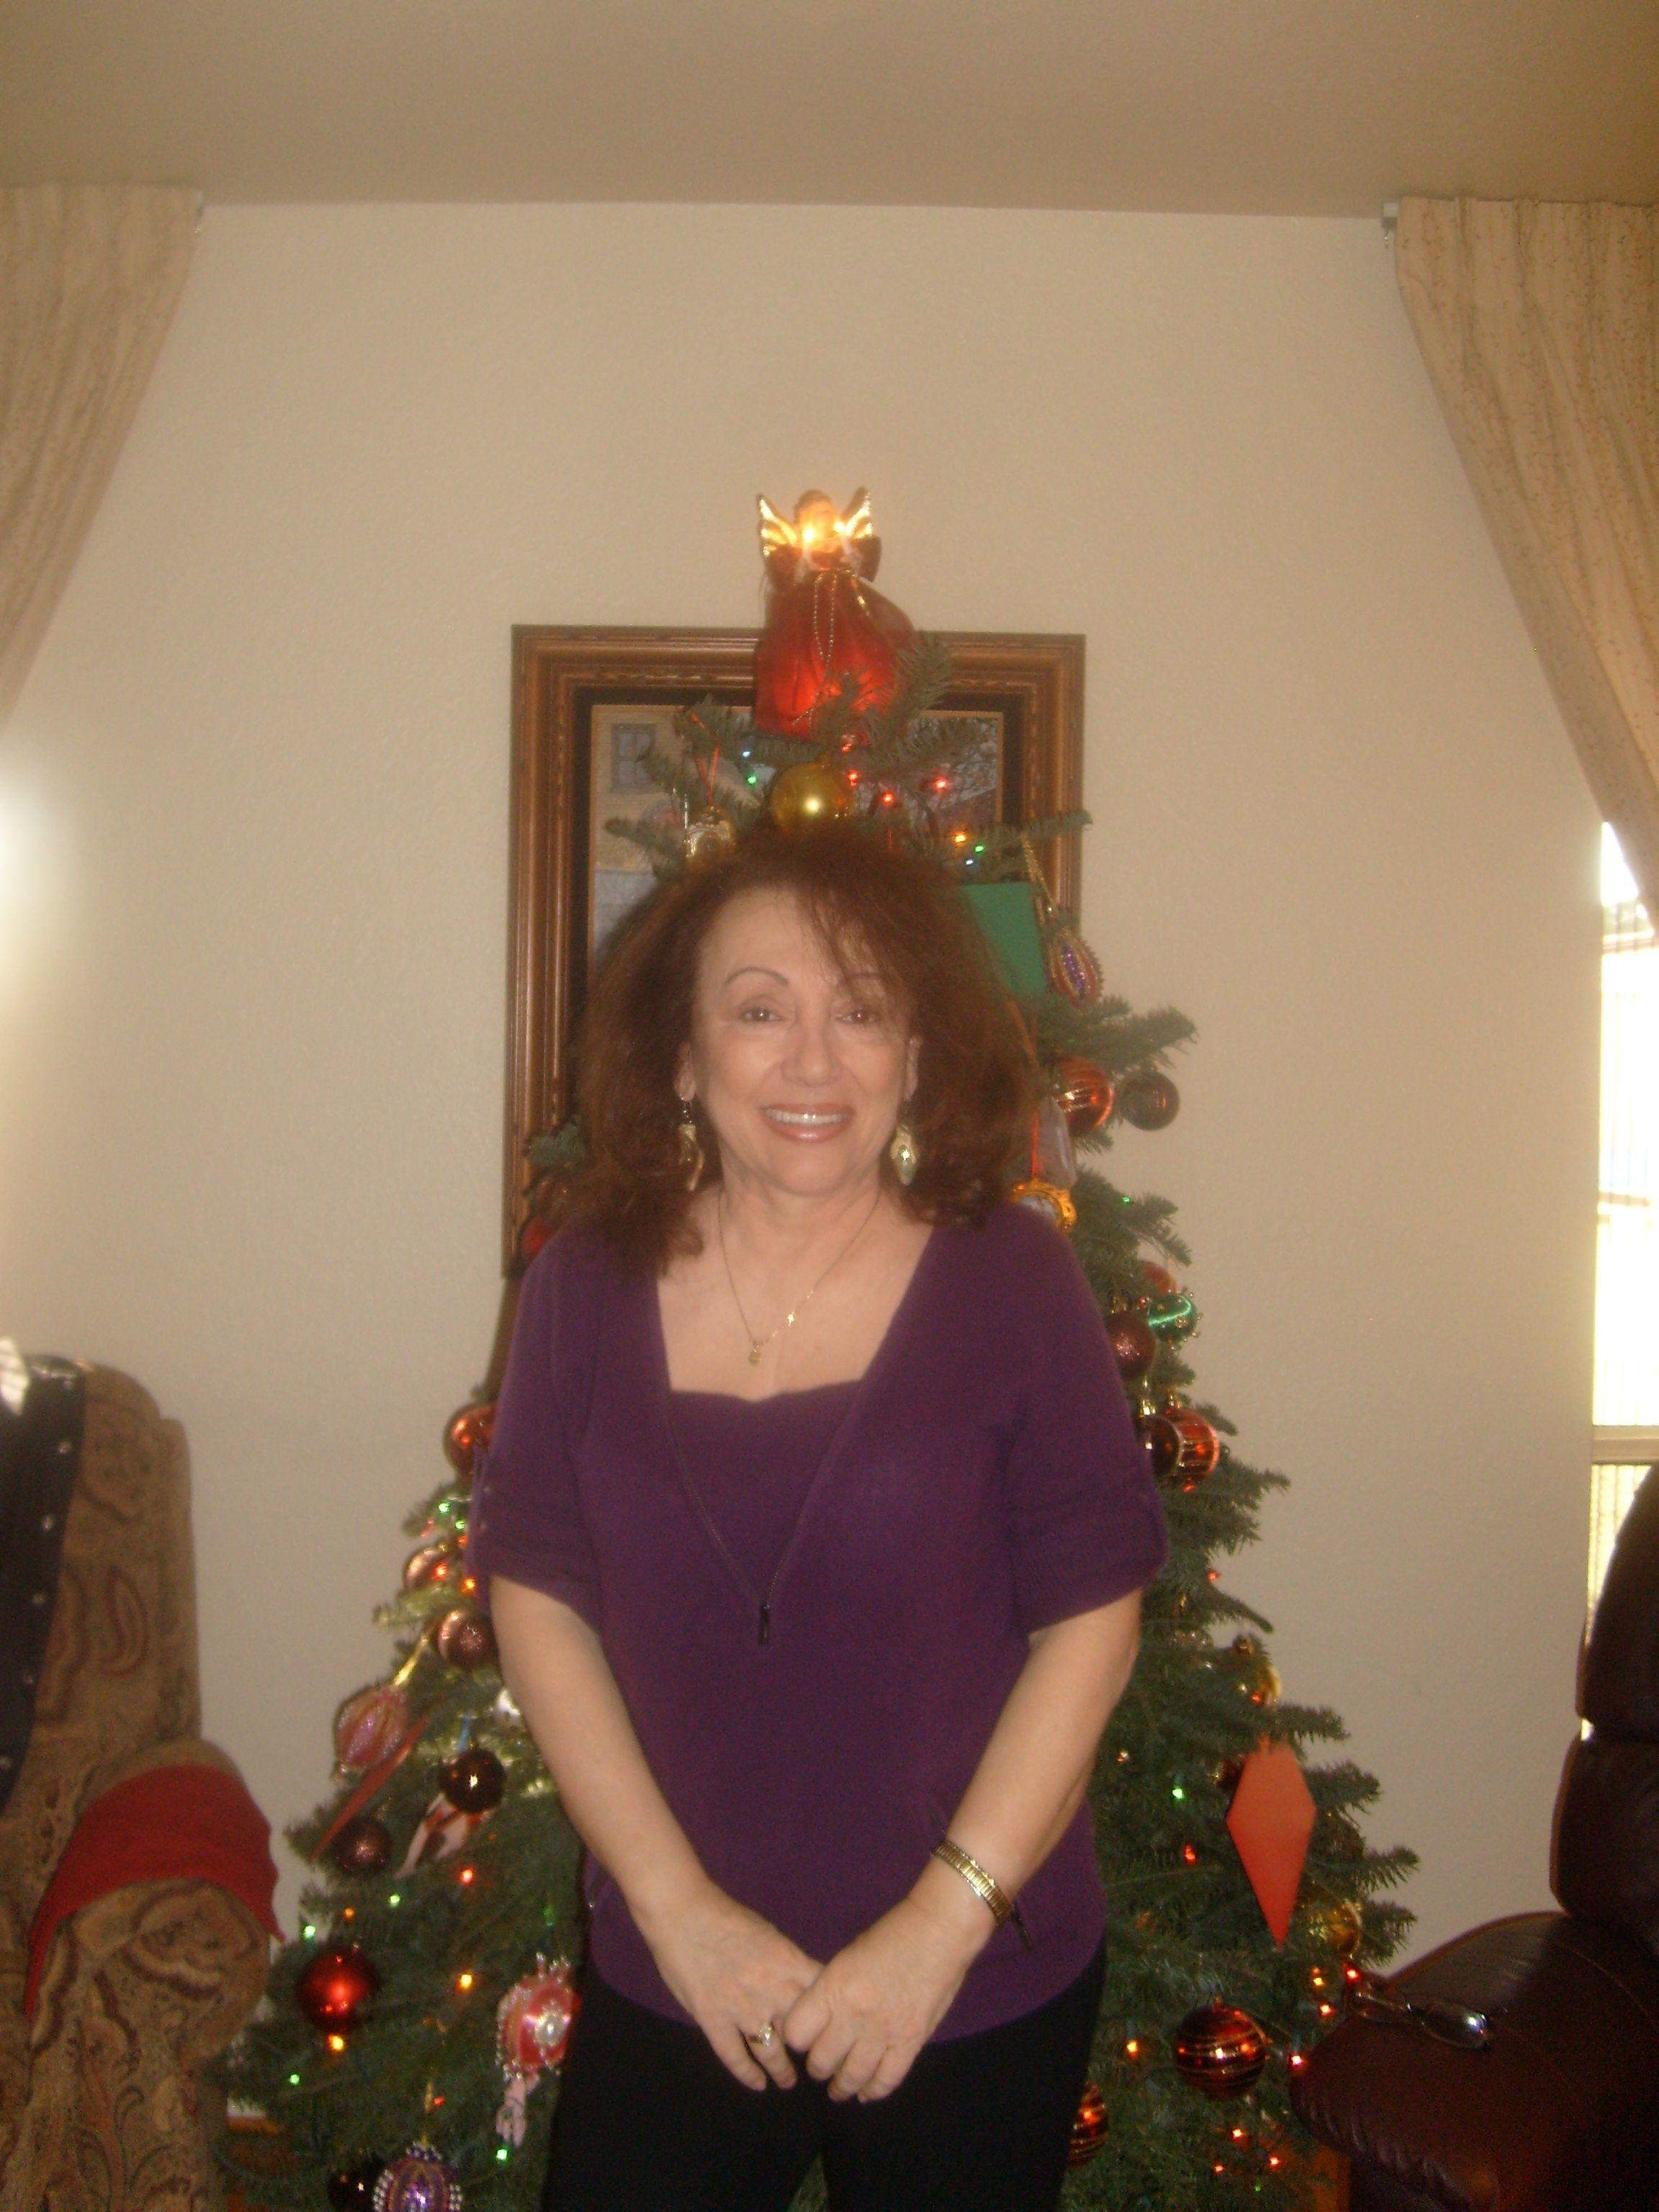 san pierre singles over 50 100% free online dating in san pierre 1,500,000 daily active members.